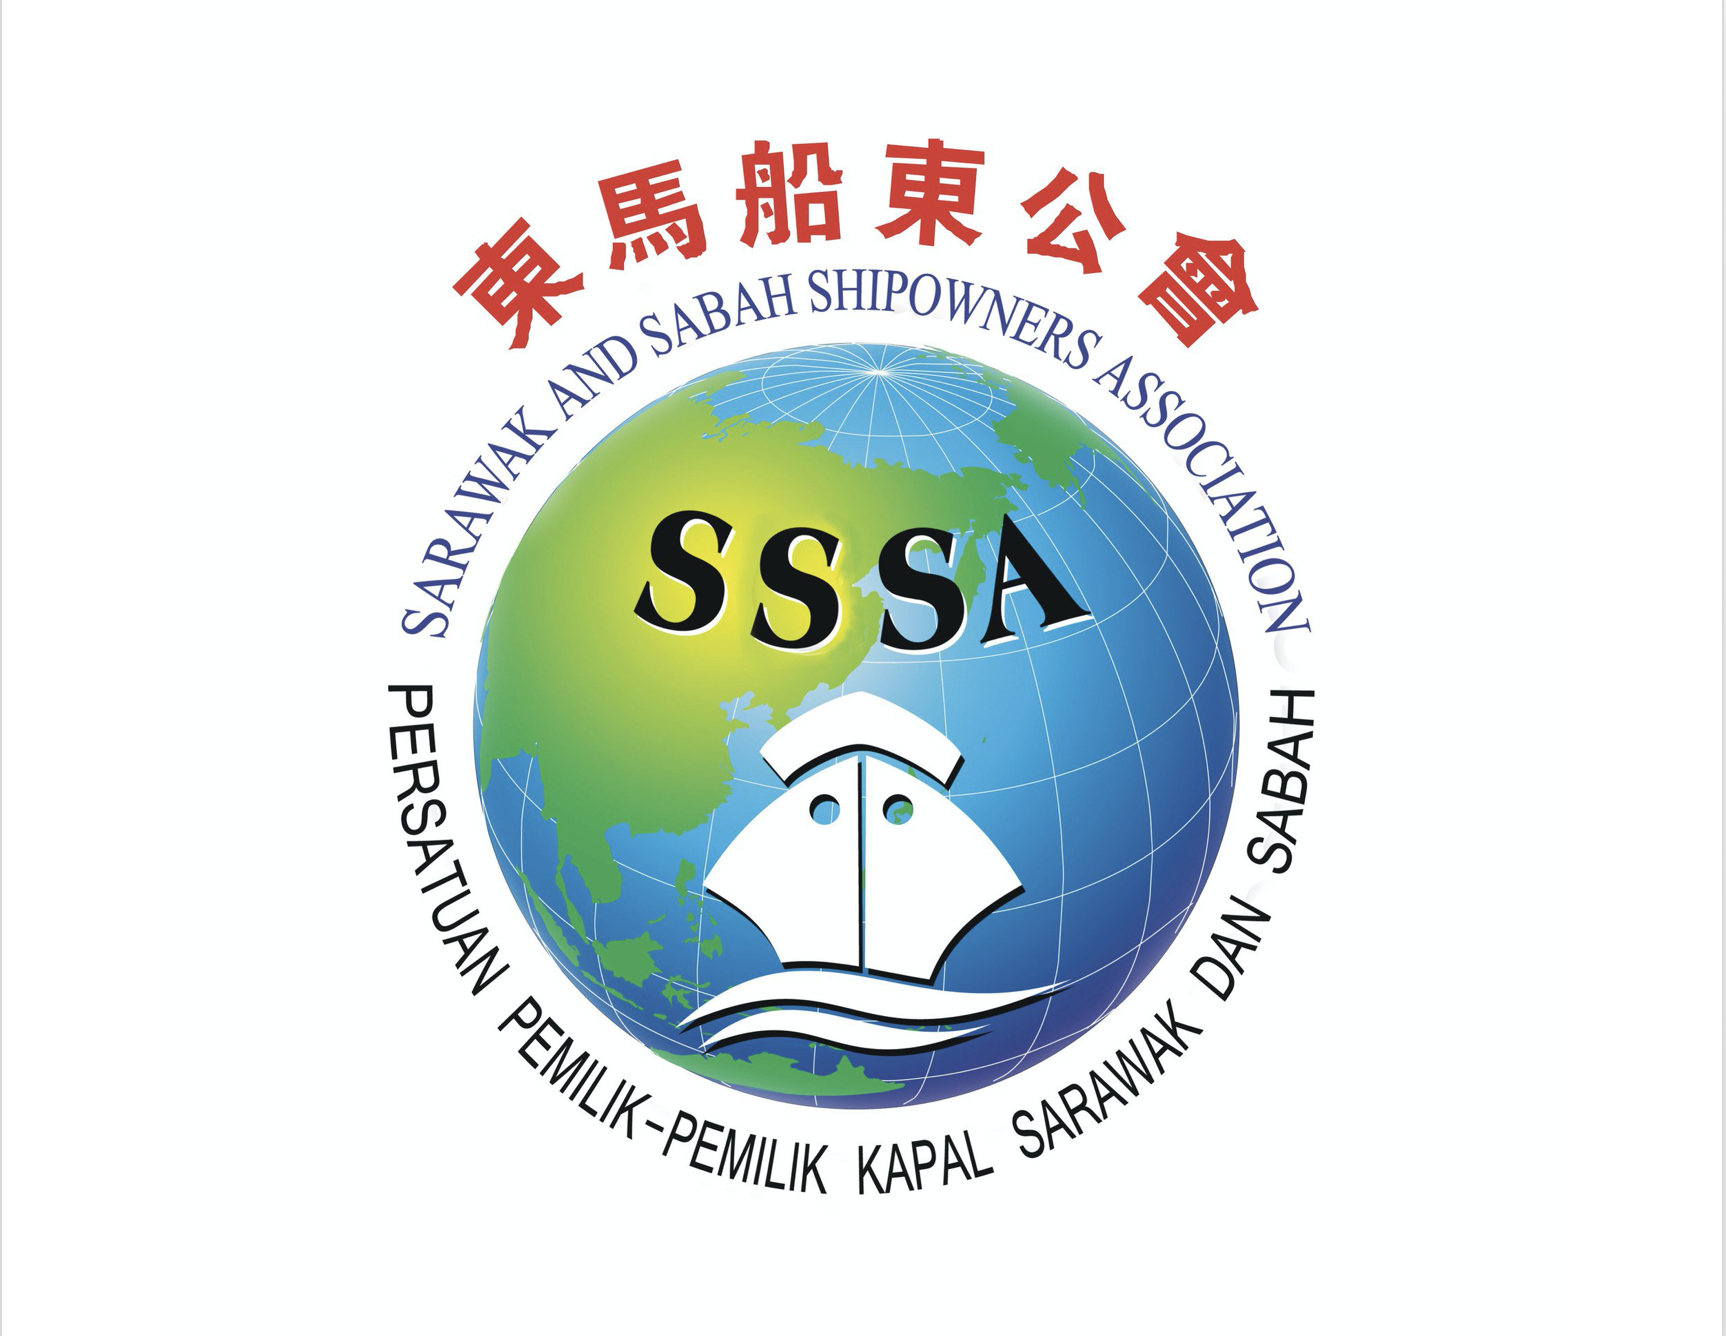 Sarawak and Sabah Shipowners against prohibiting single hull vessels carrying oil cargo